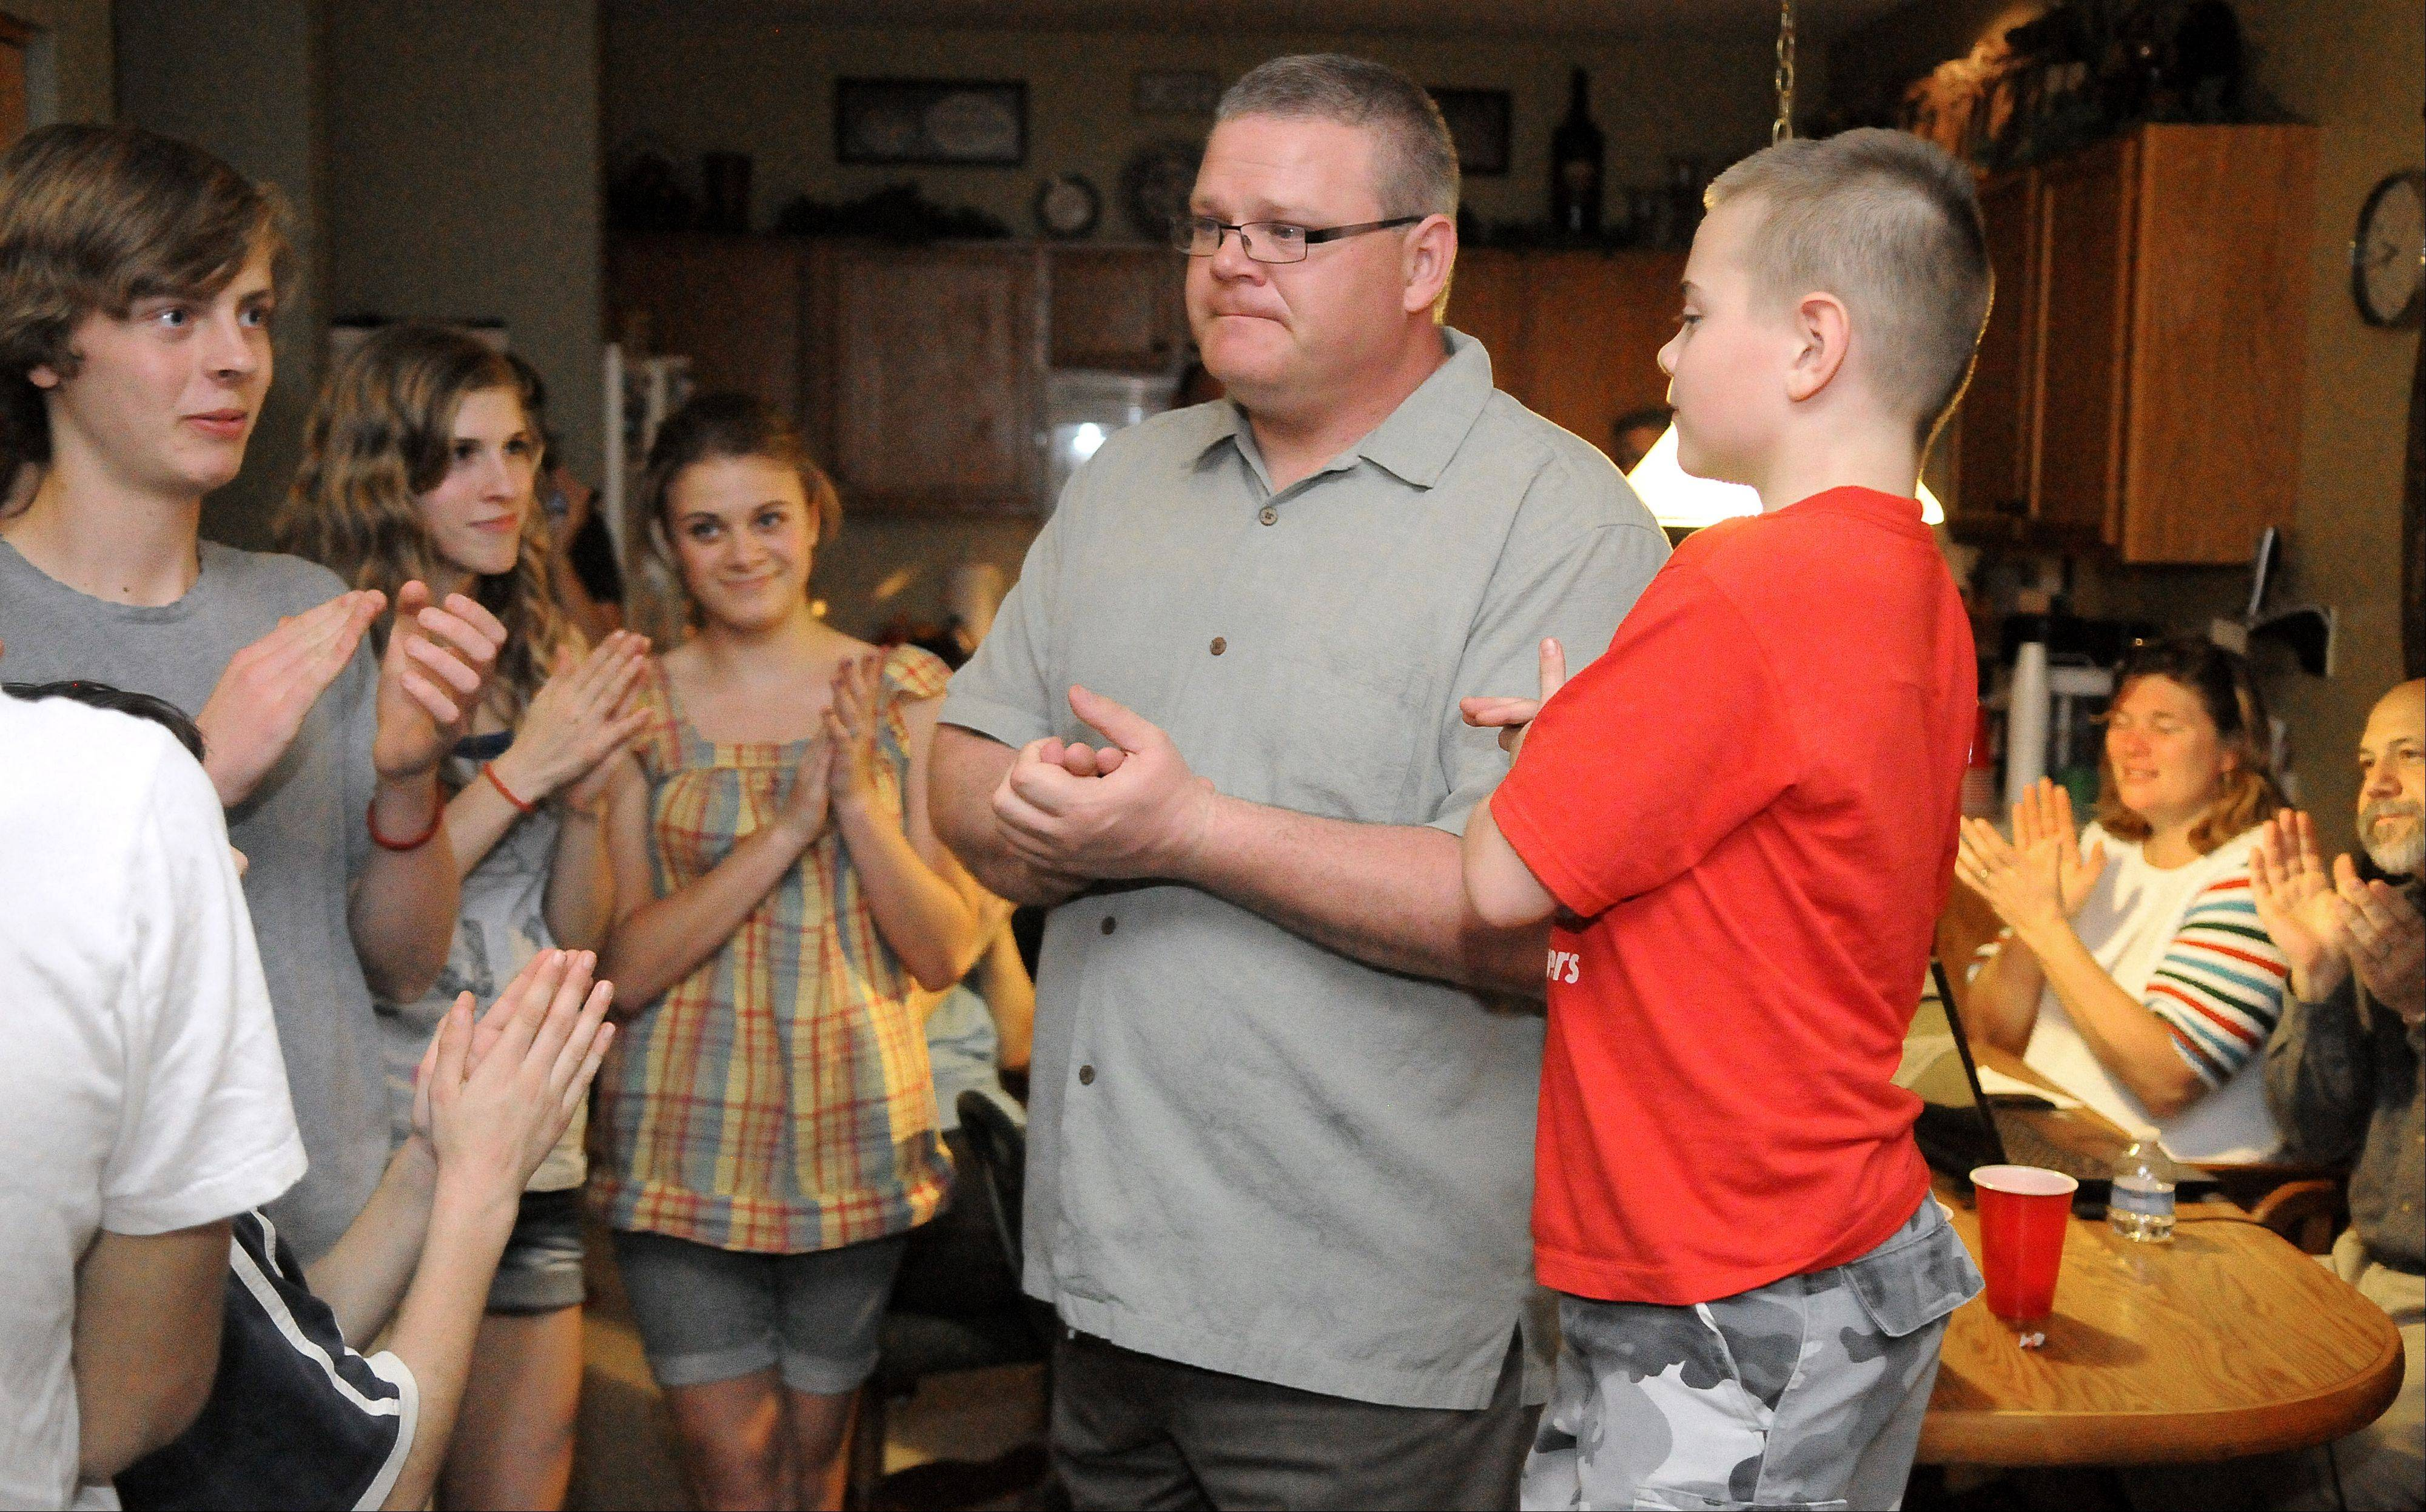 Kane County coroner Republican candidate Rob Russell sheds a tear as he talks to his children and other home-schoolers at his South Elgin home Tuesday, thanking them for their hard work on his campaign to help him win. Son Brock, 9, stands at right and daughter, Brie, 16, at left.